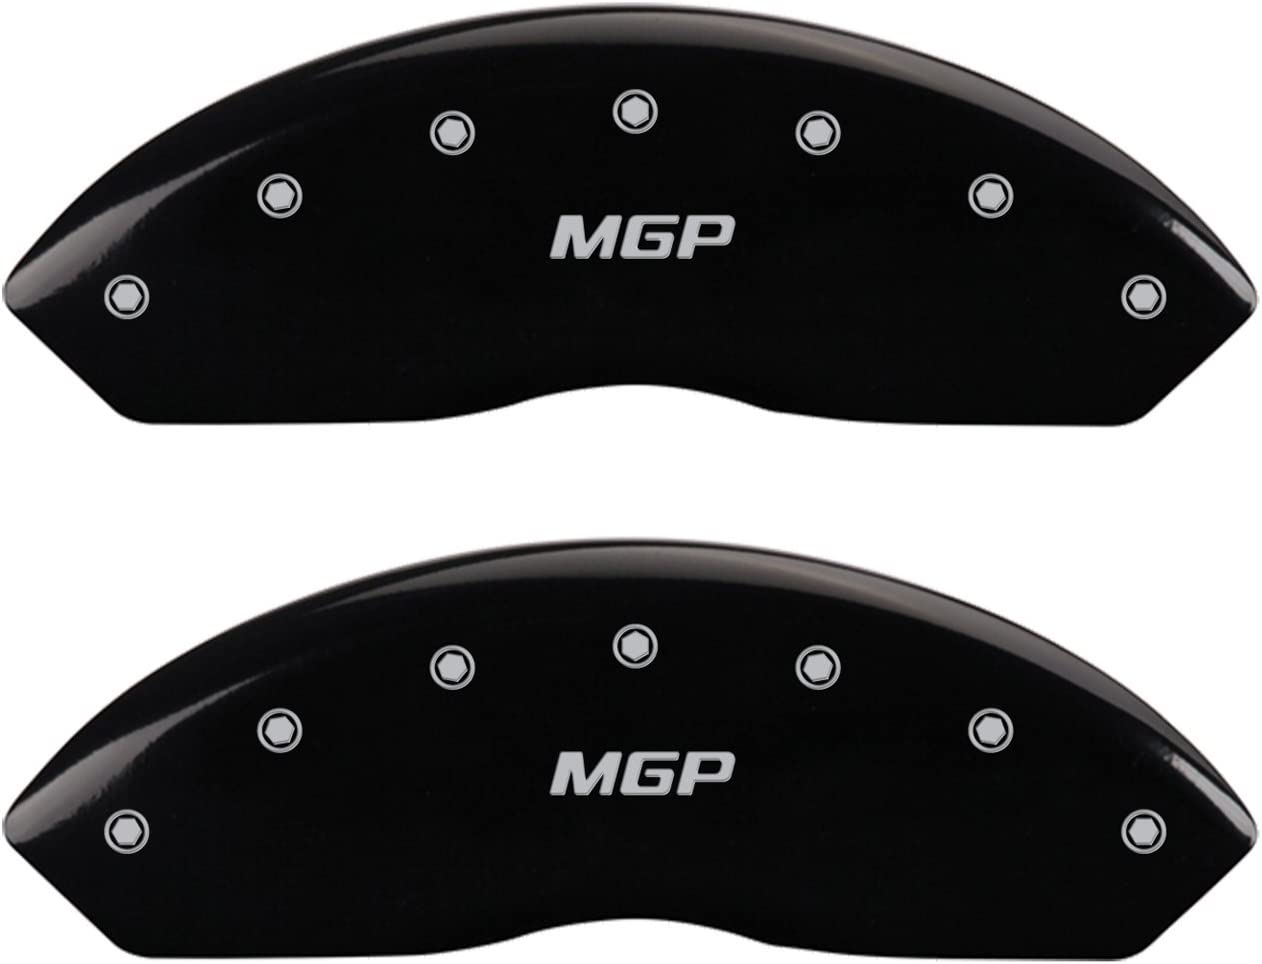 MGP Caliper Covers Superlatite 37003SMGPBK with 'MGP' Cover Engraved Outlet SALE